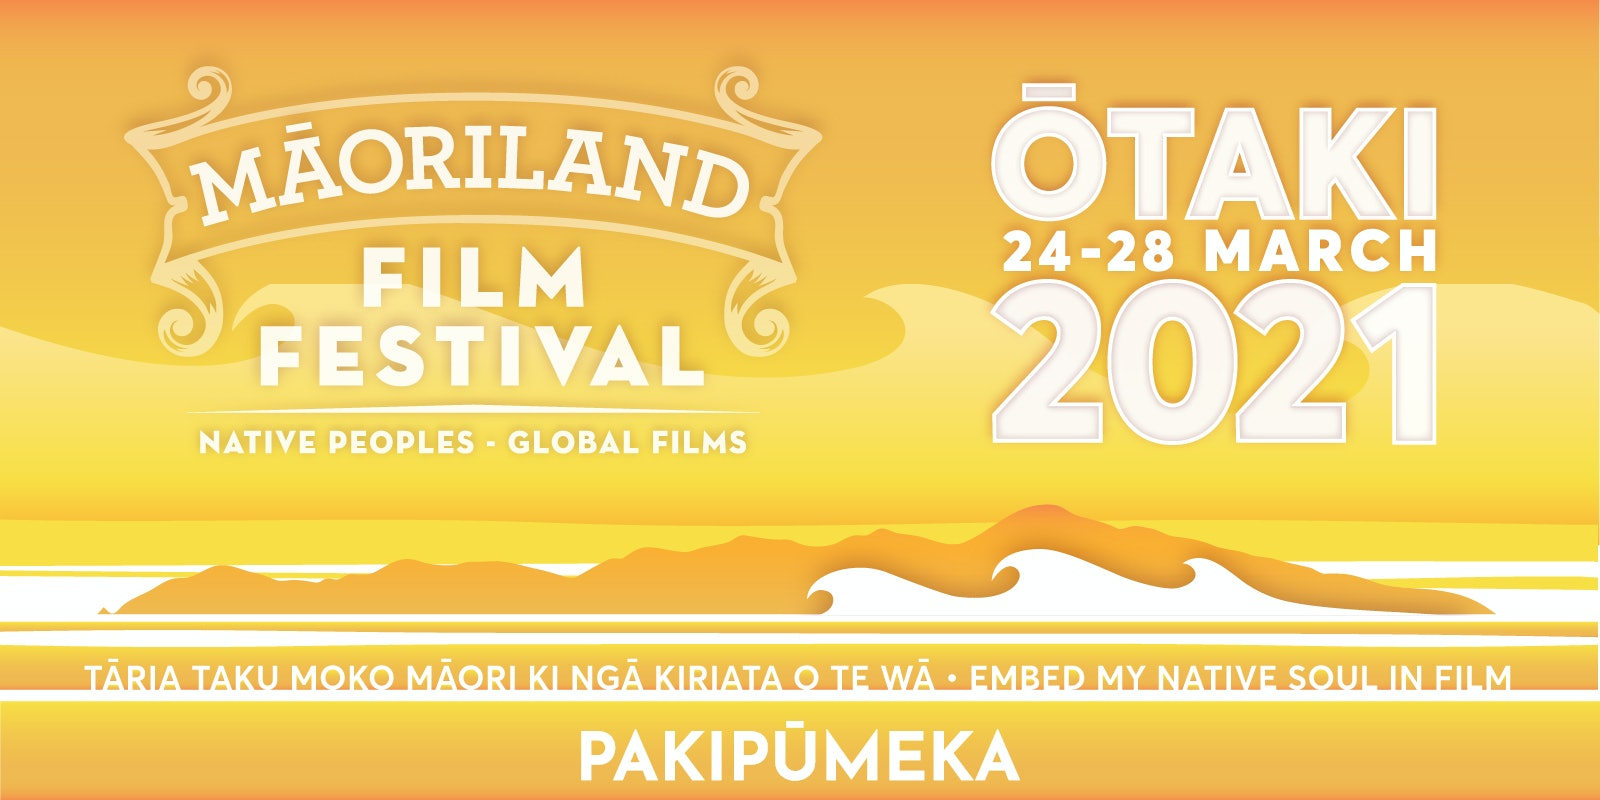 MAORILAND FILM FESTIVAL 2021 | Pakipumeka - Documentaries